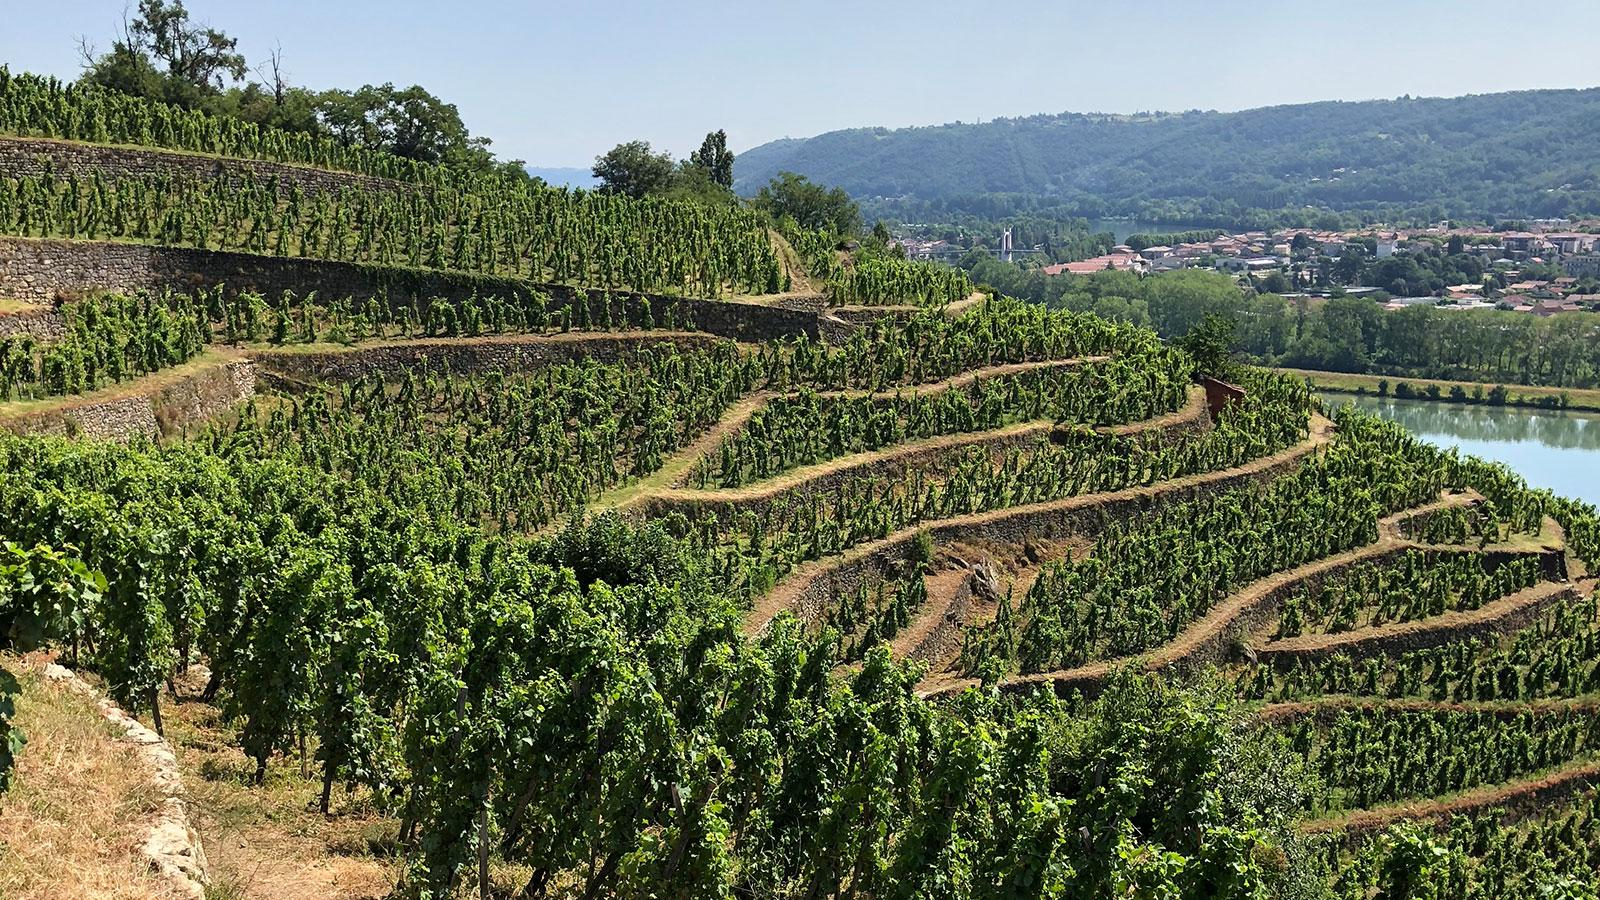 At just 9 acres, Château-Grillet is one of the smallest appellations in France.